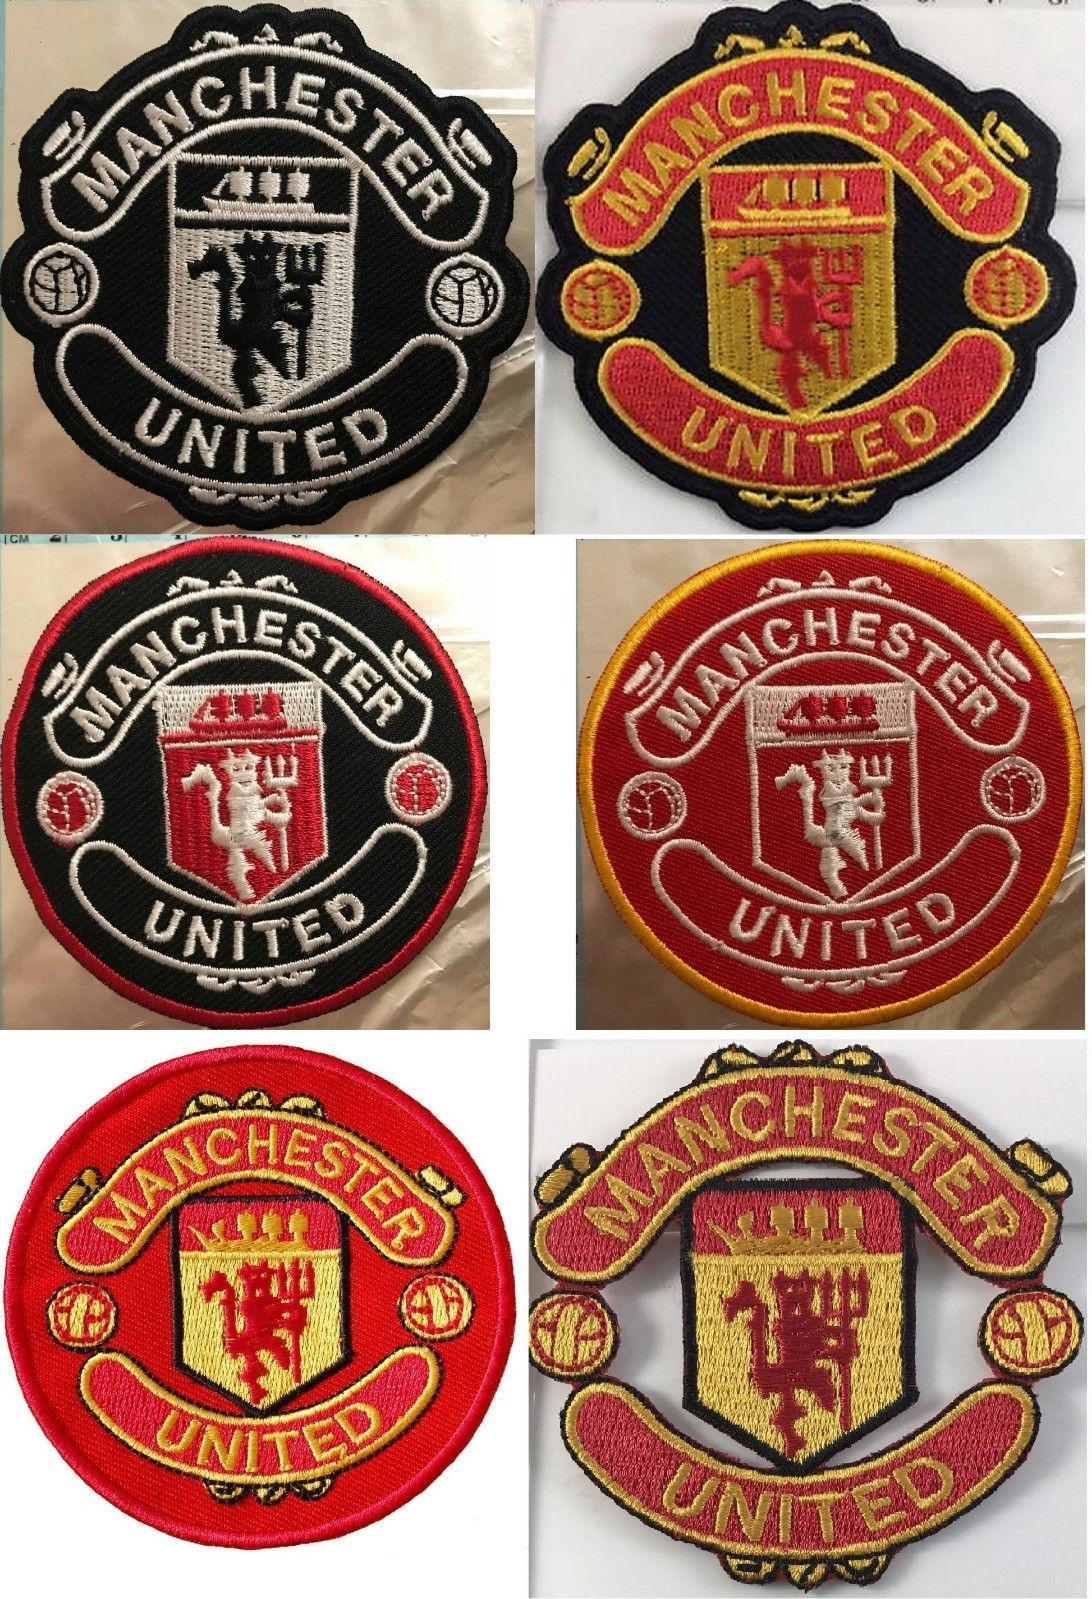 d1bbdbdd028 Manchester United Embroidered Football Clubs Iron Sew On Badges ...